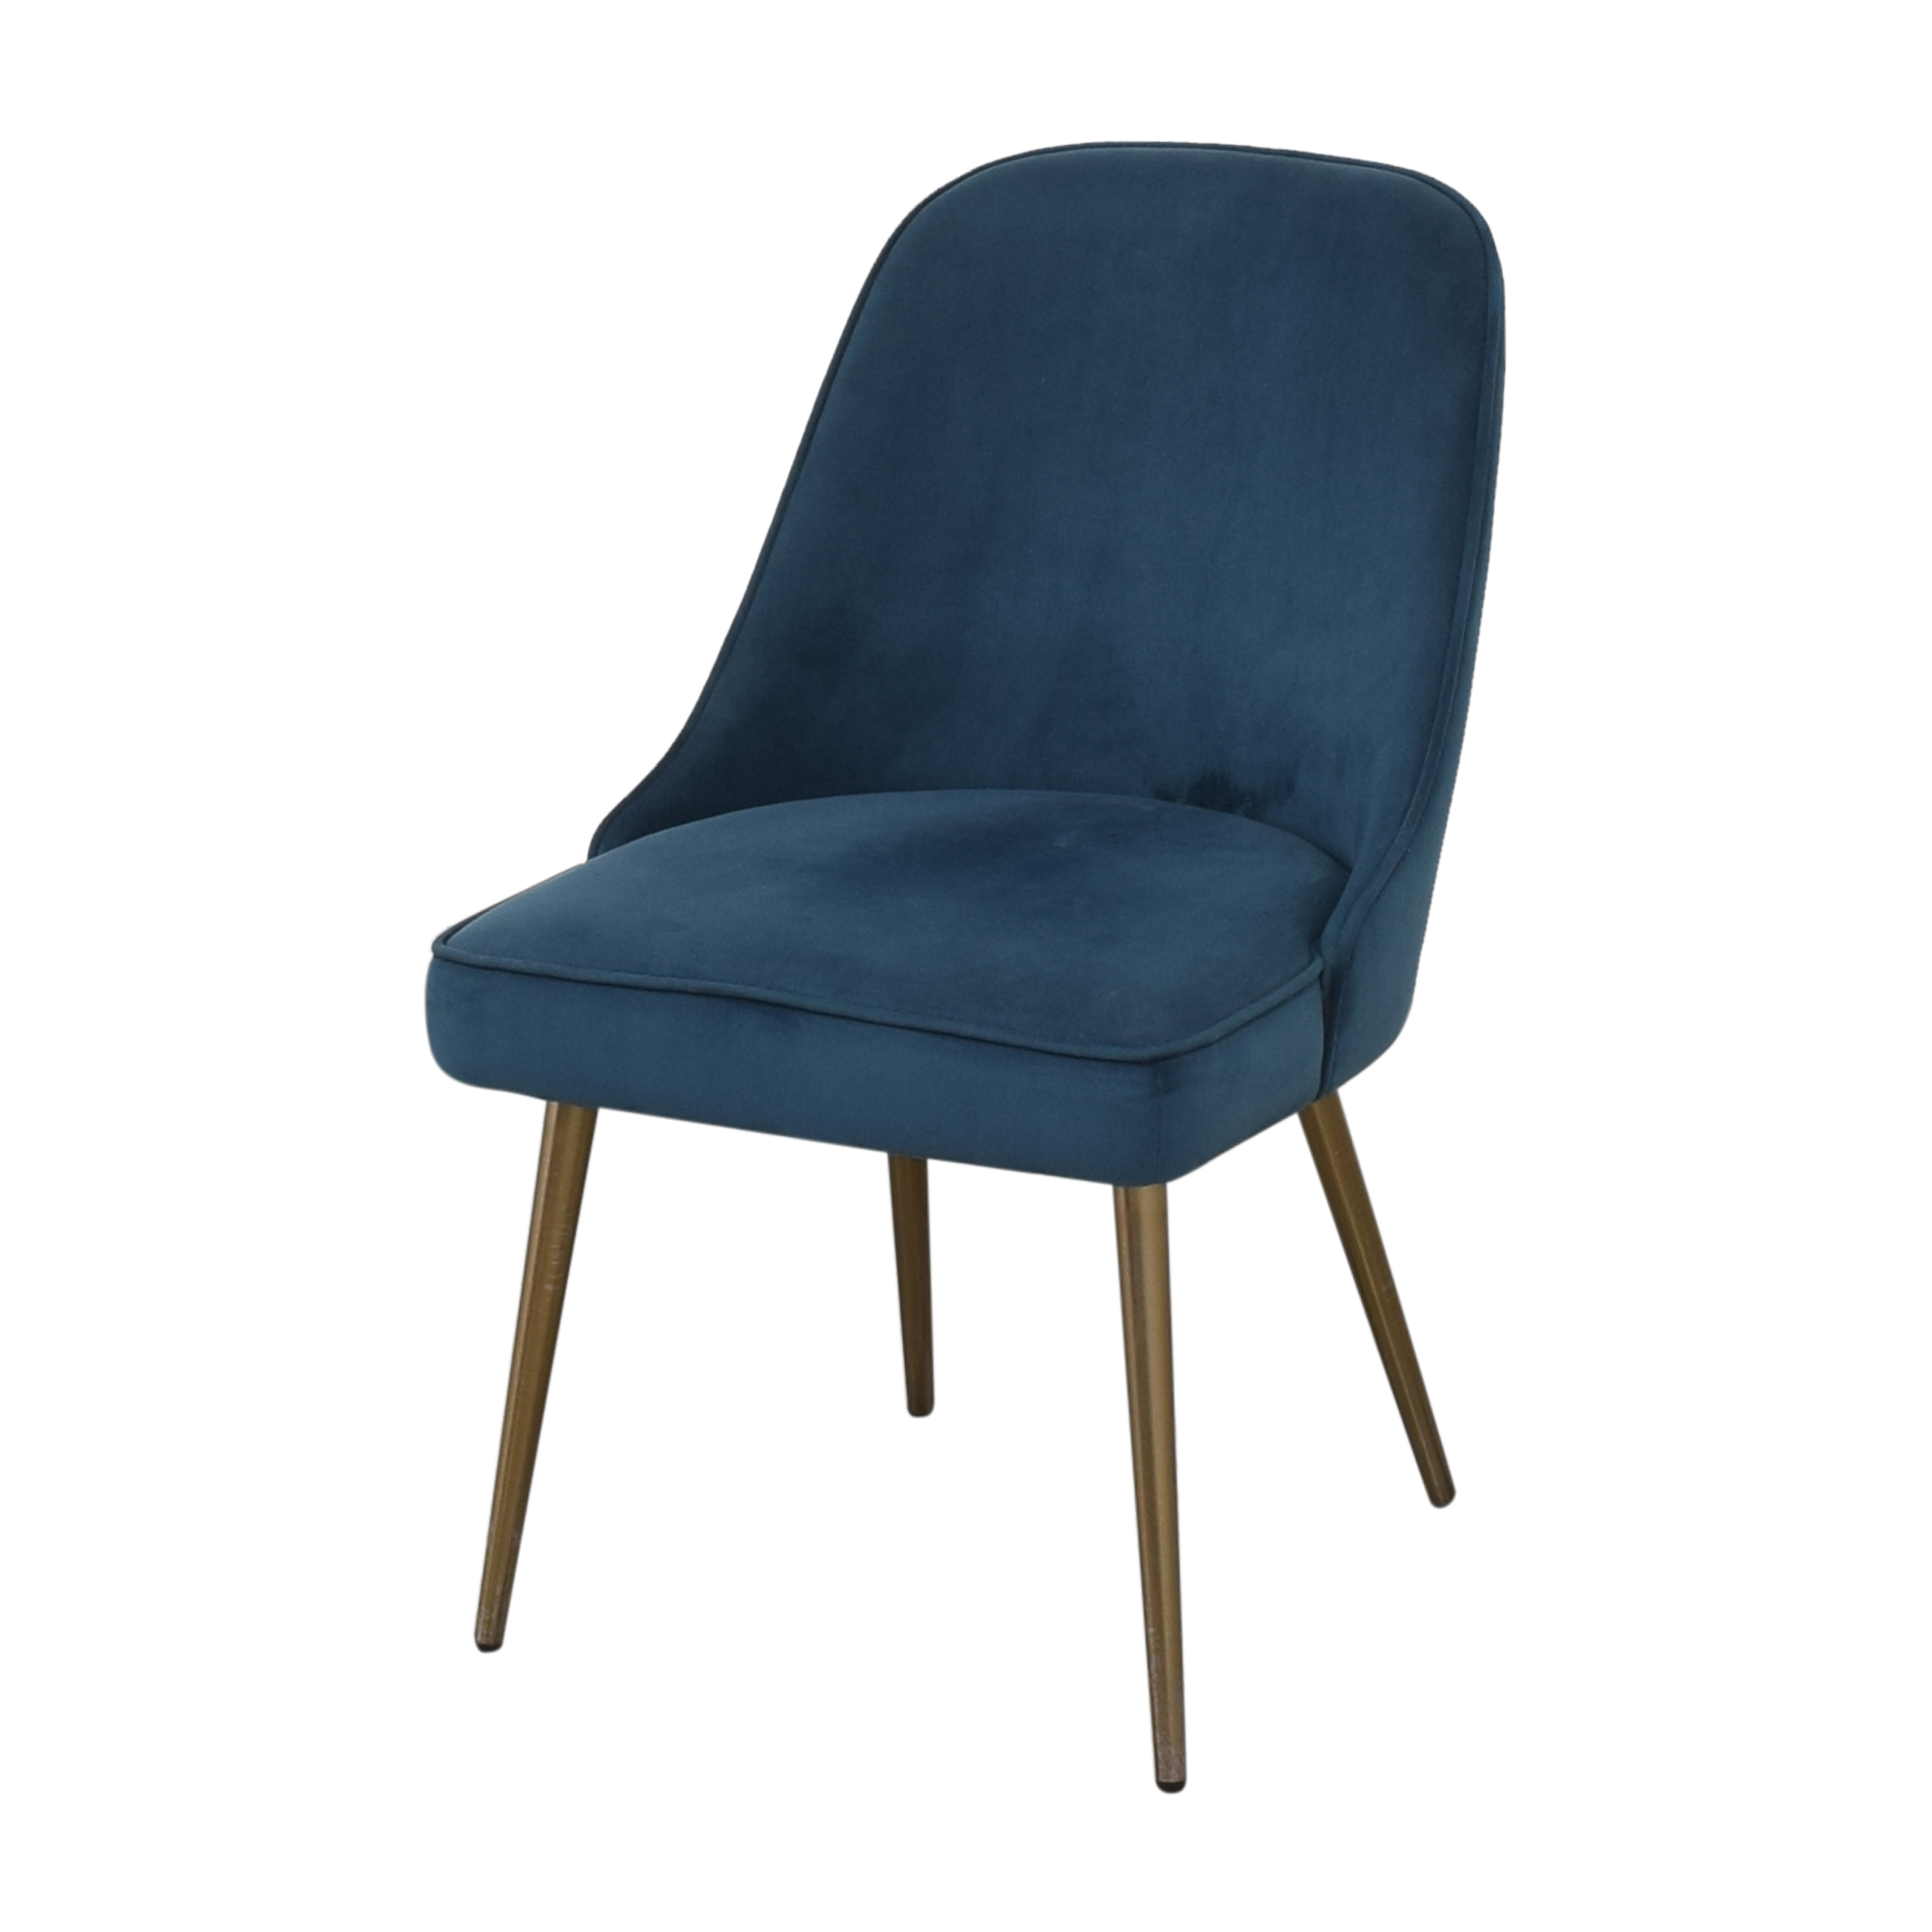 buy West Elm Mid Century Upholstered Dining Chairs West Elm Dining Chairs